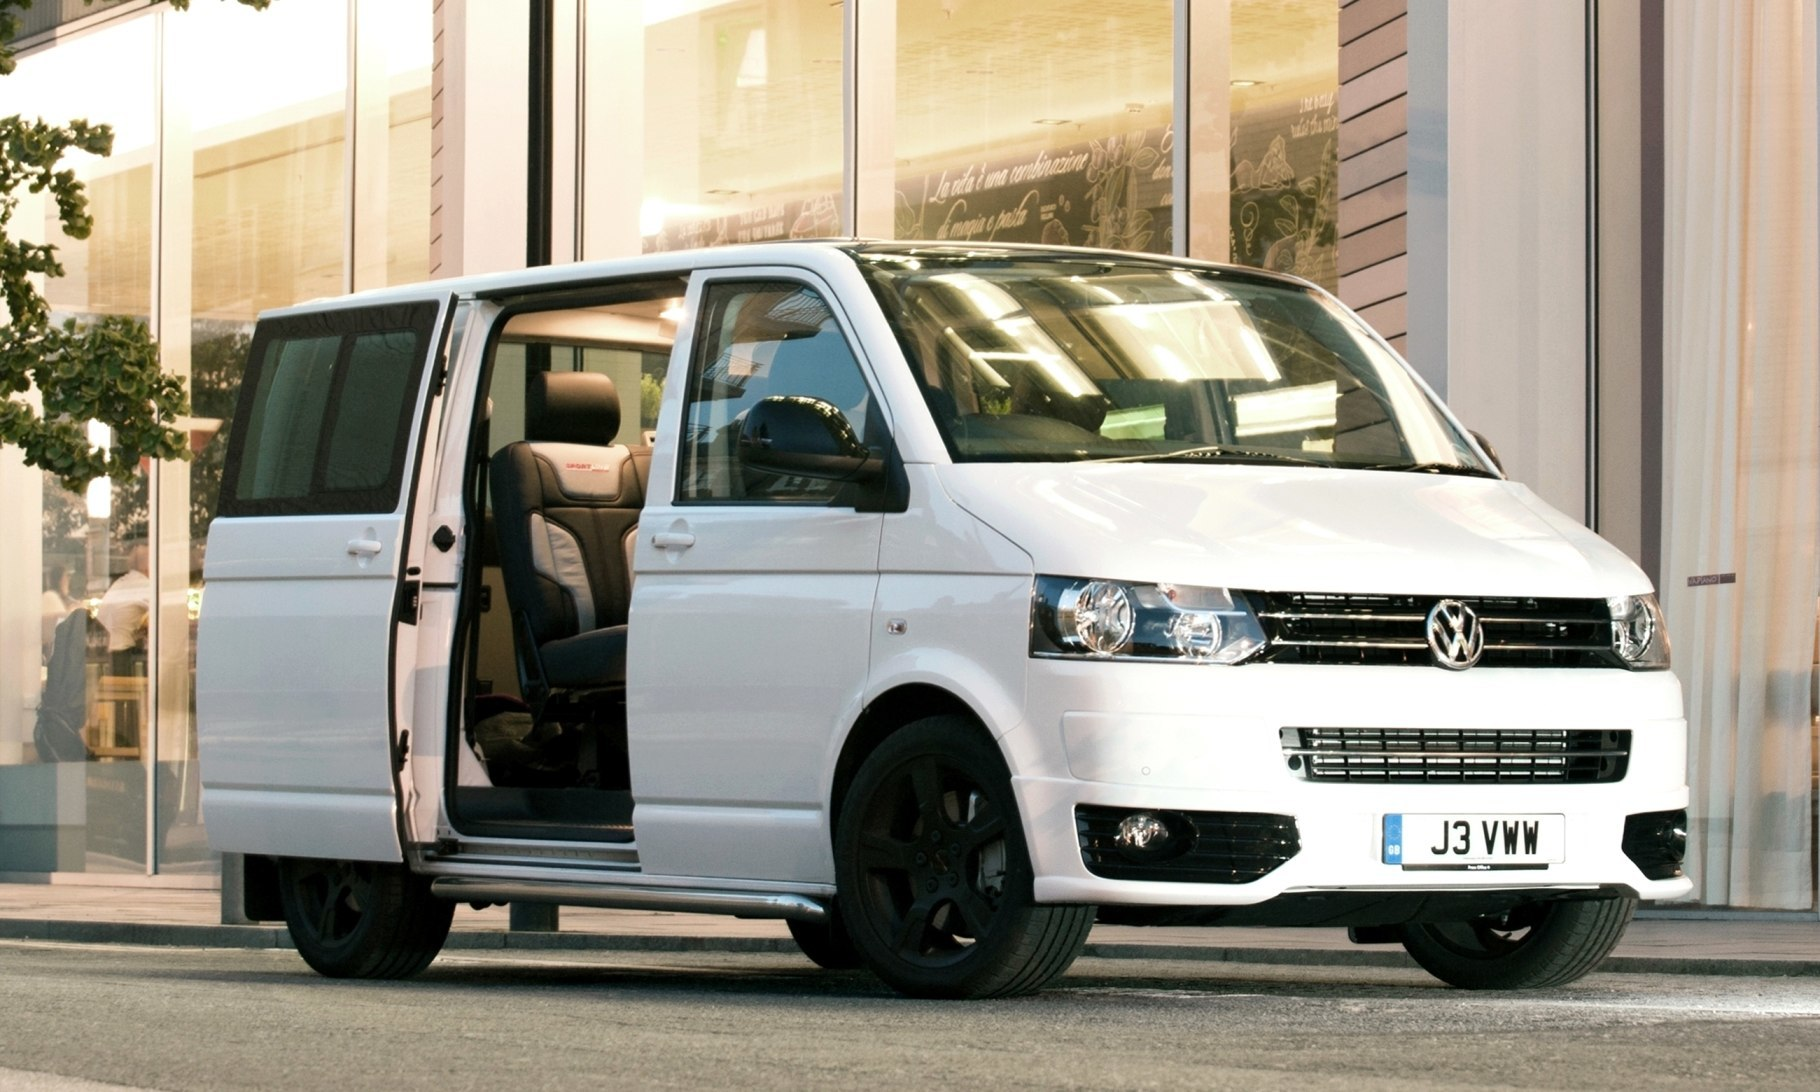 Hy B Day To The Volkswagen Transporter Work Van Legend Turns 60 In Uk This Year